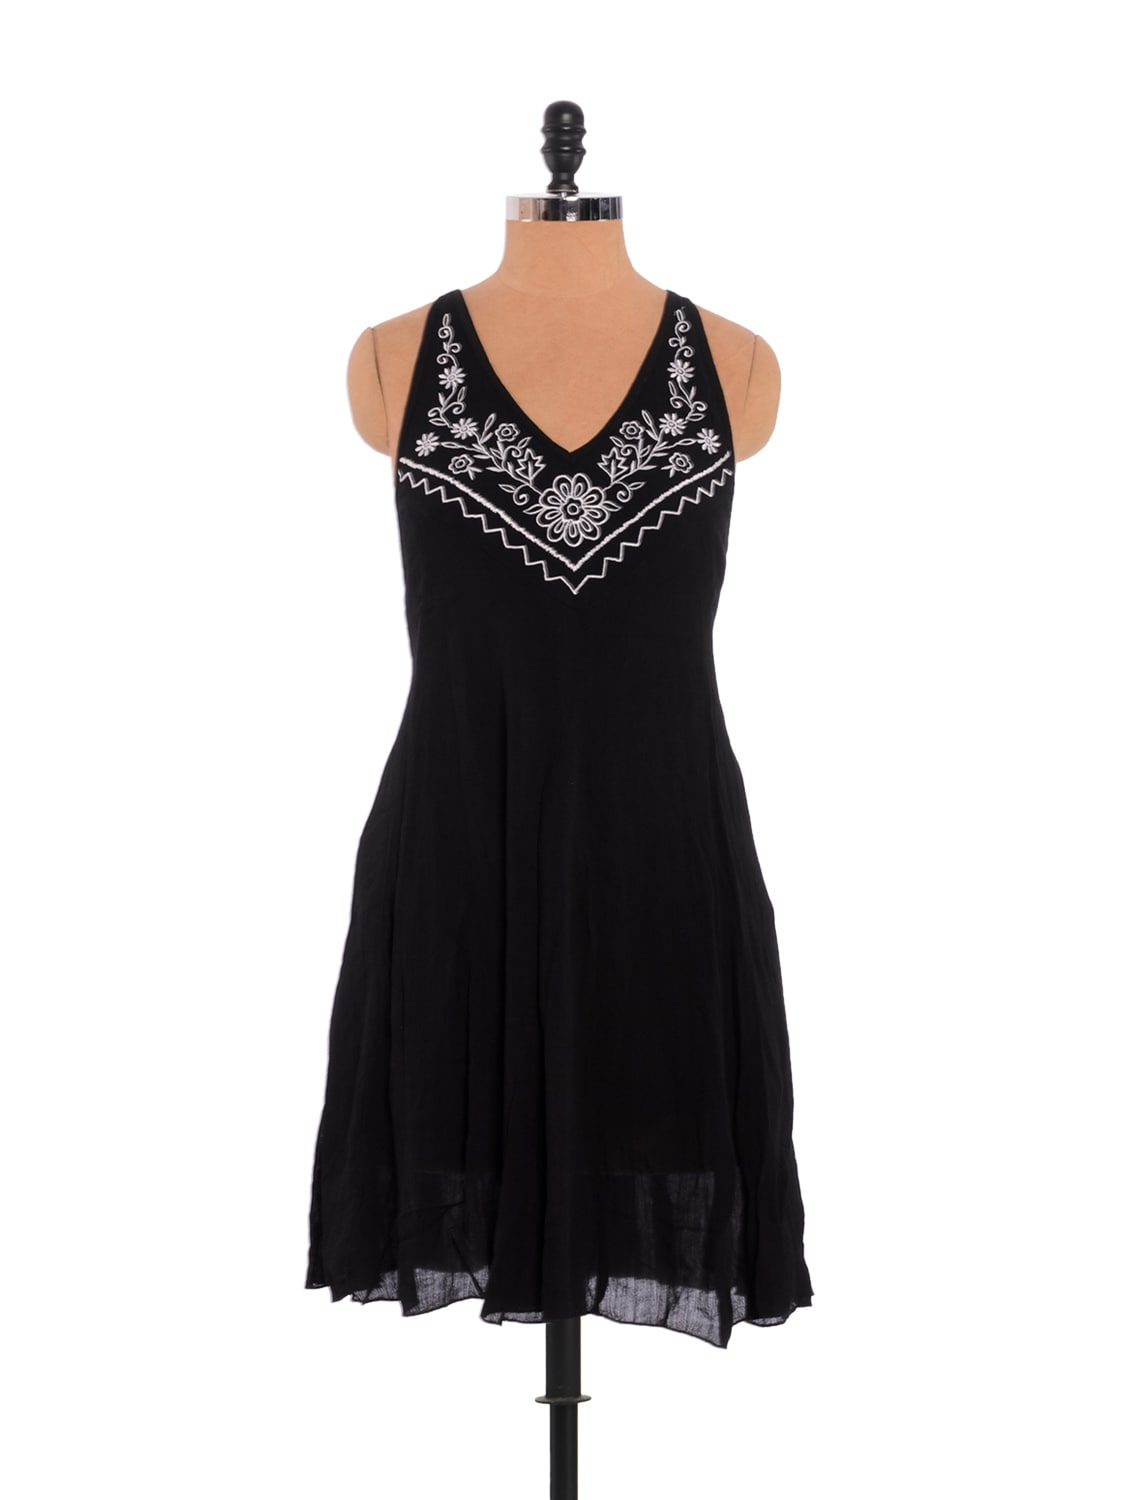 Floral Embroidered Black Dress With Stylish Back - URBAN RELIGION